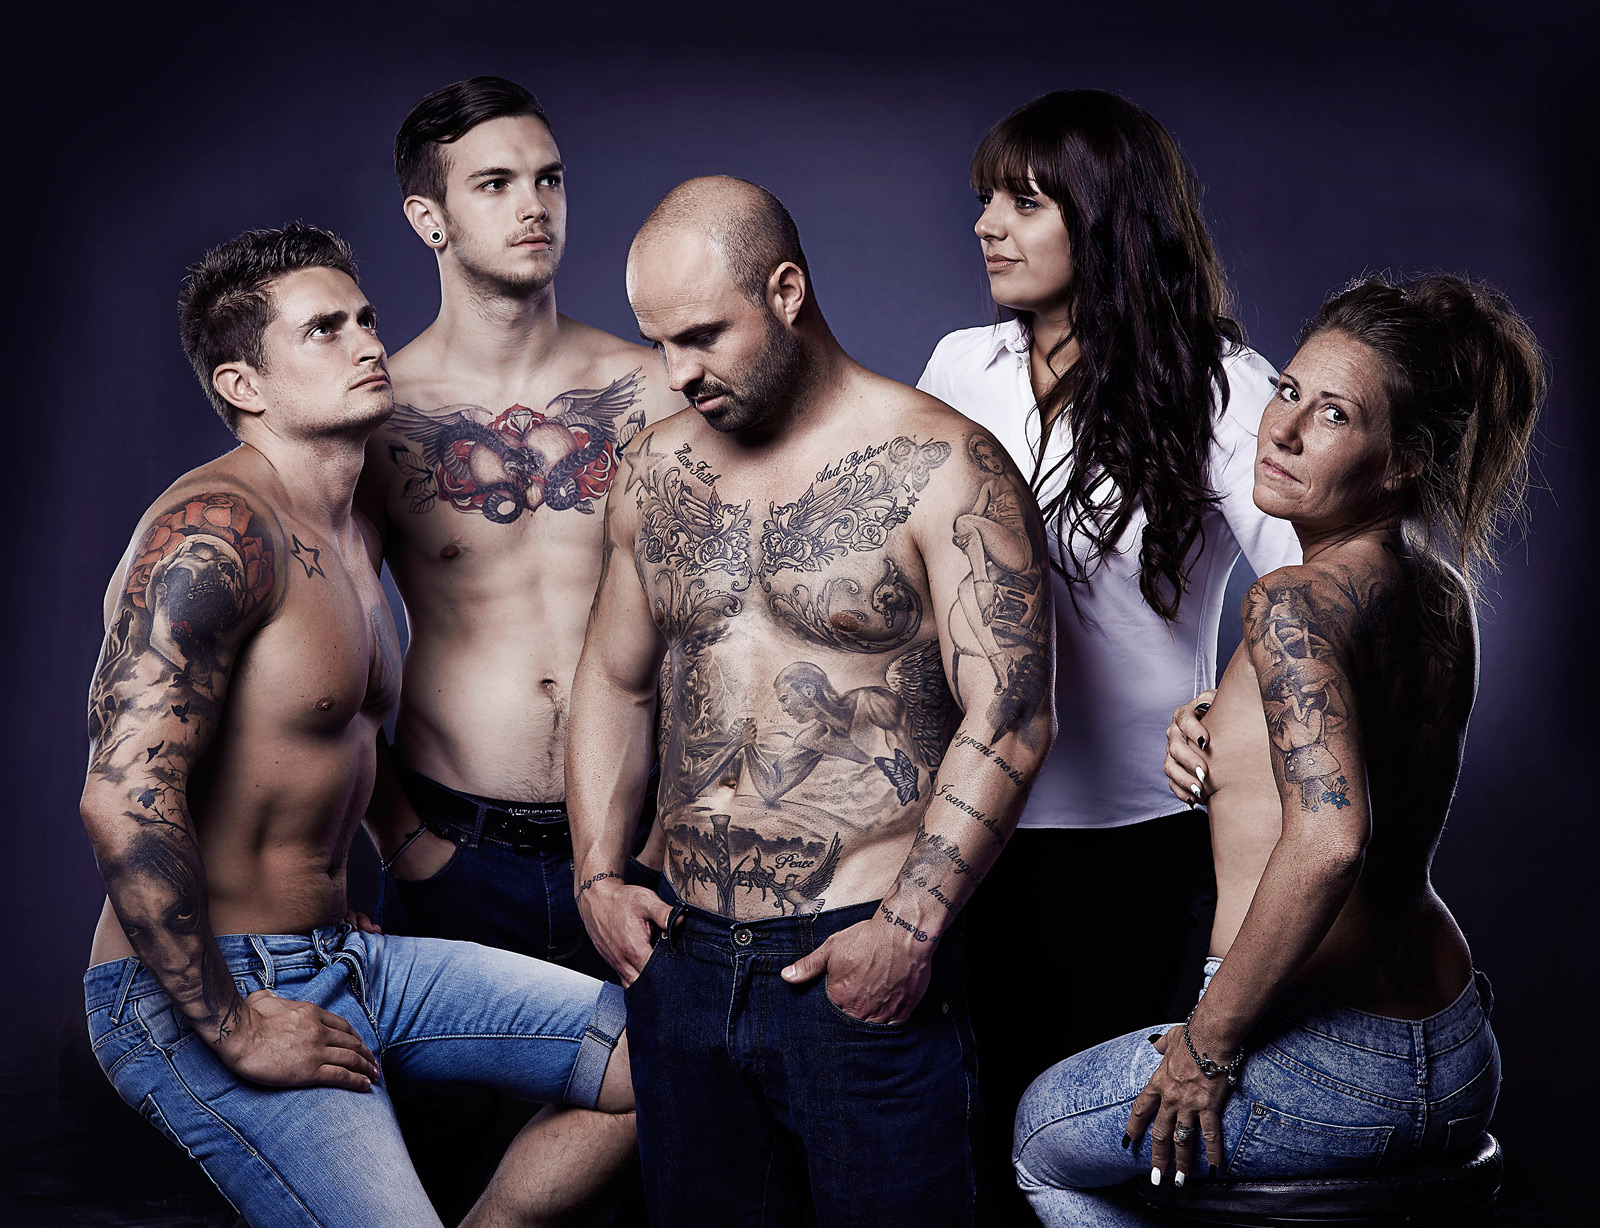 Group shot showing the team and their tattoos